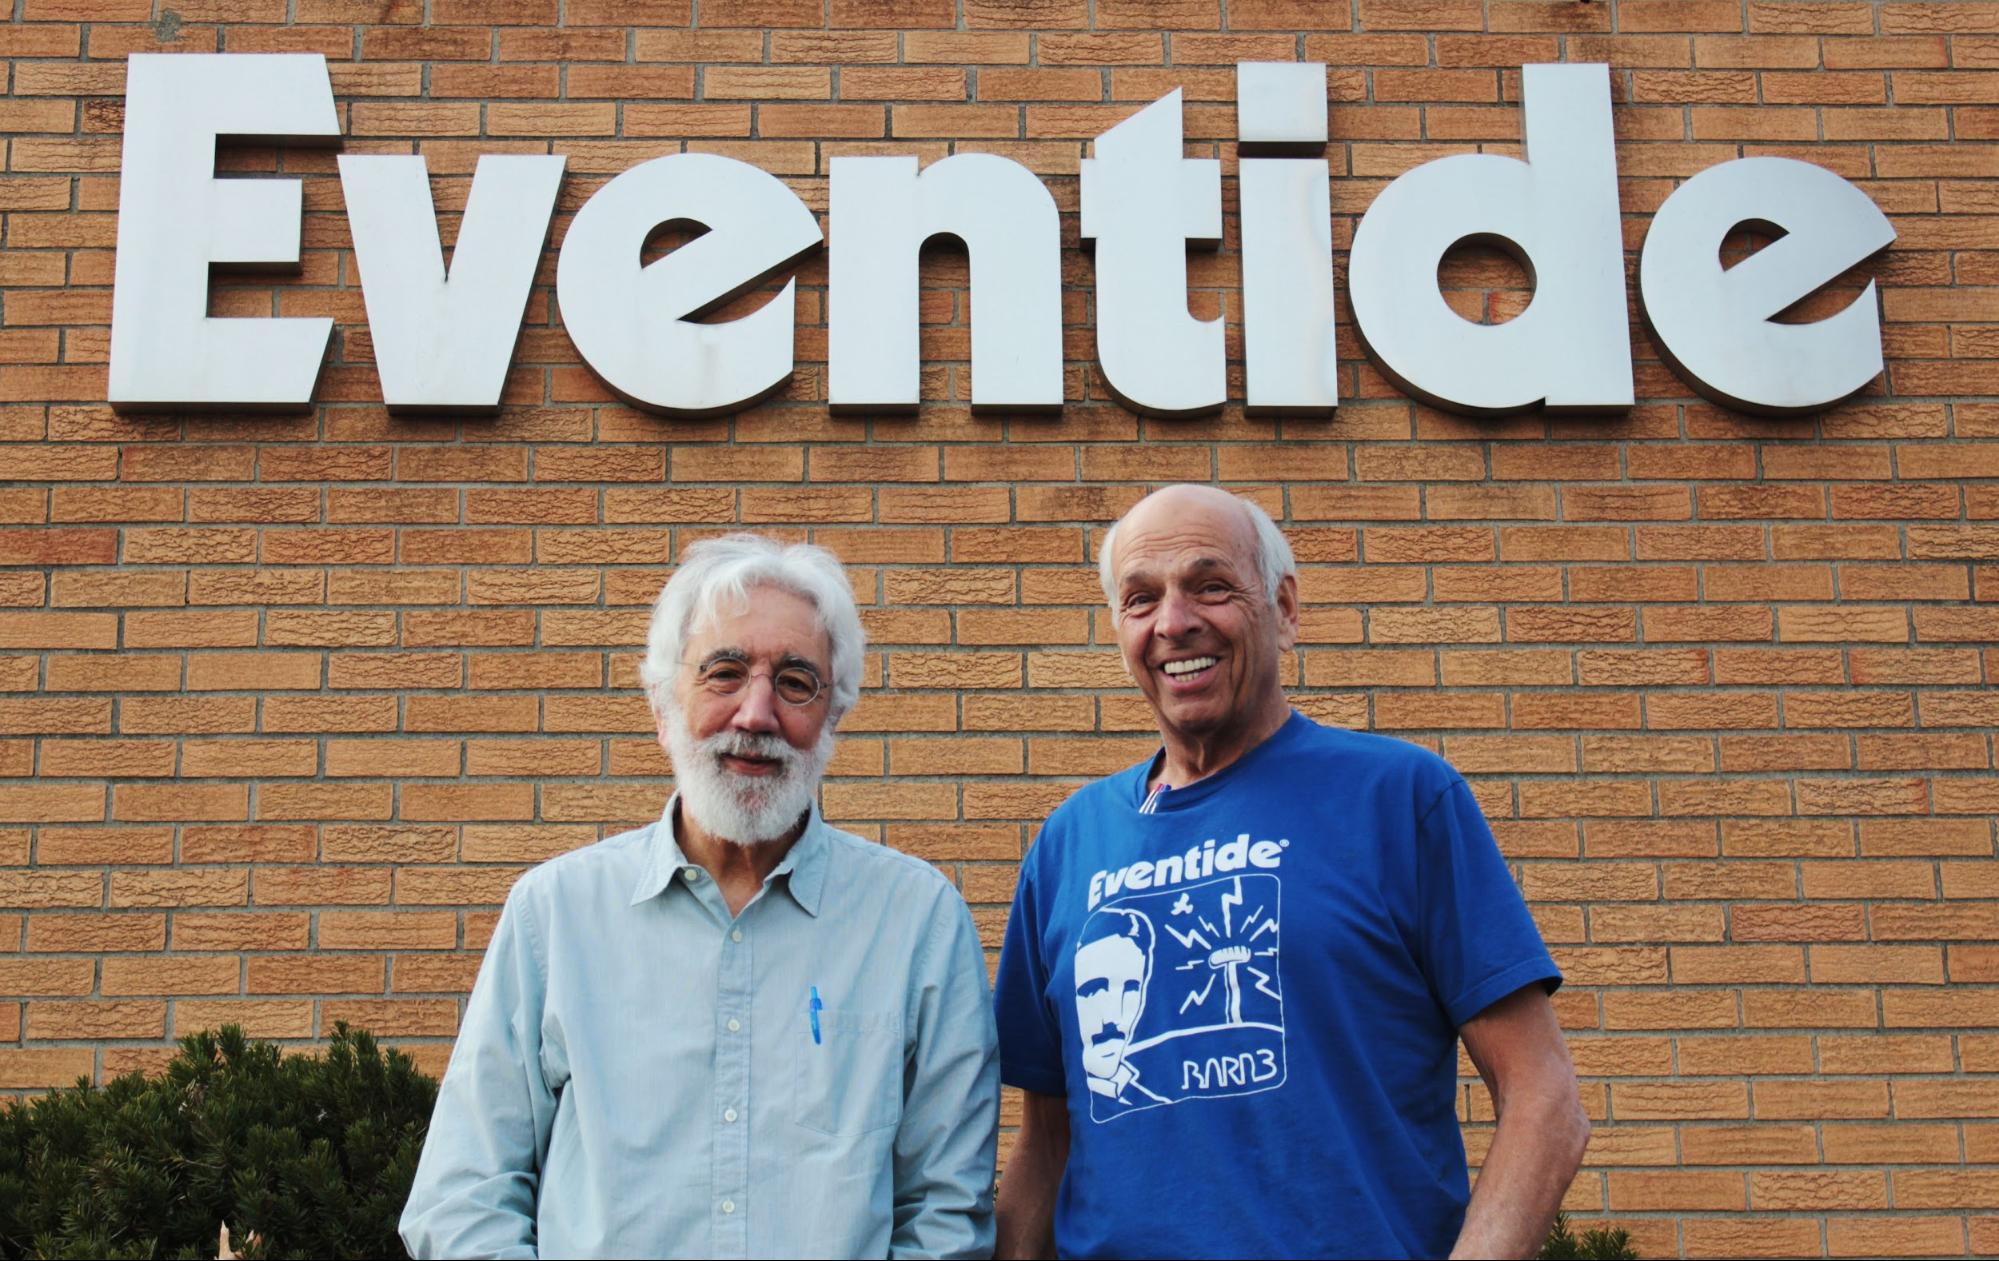 Tony Agnello (left) and Richard Factor (right) outside Eventide HQ